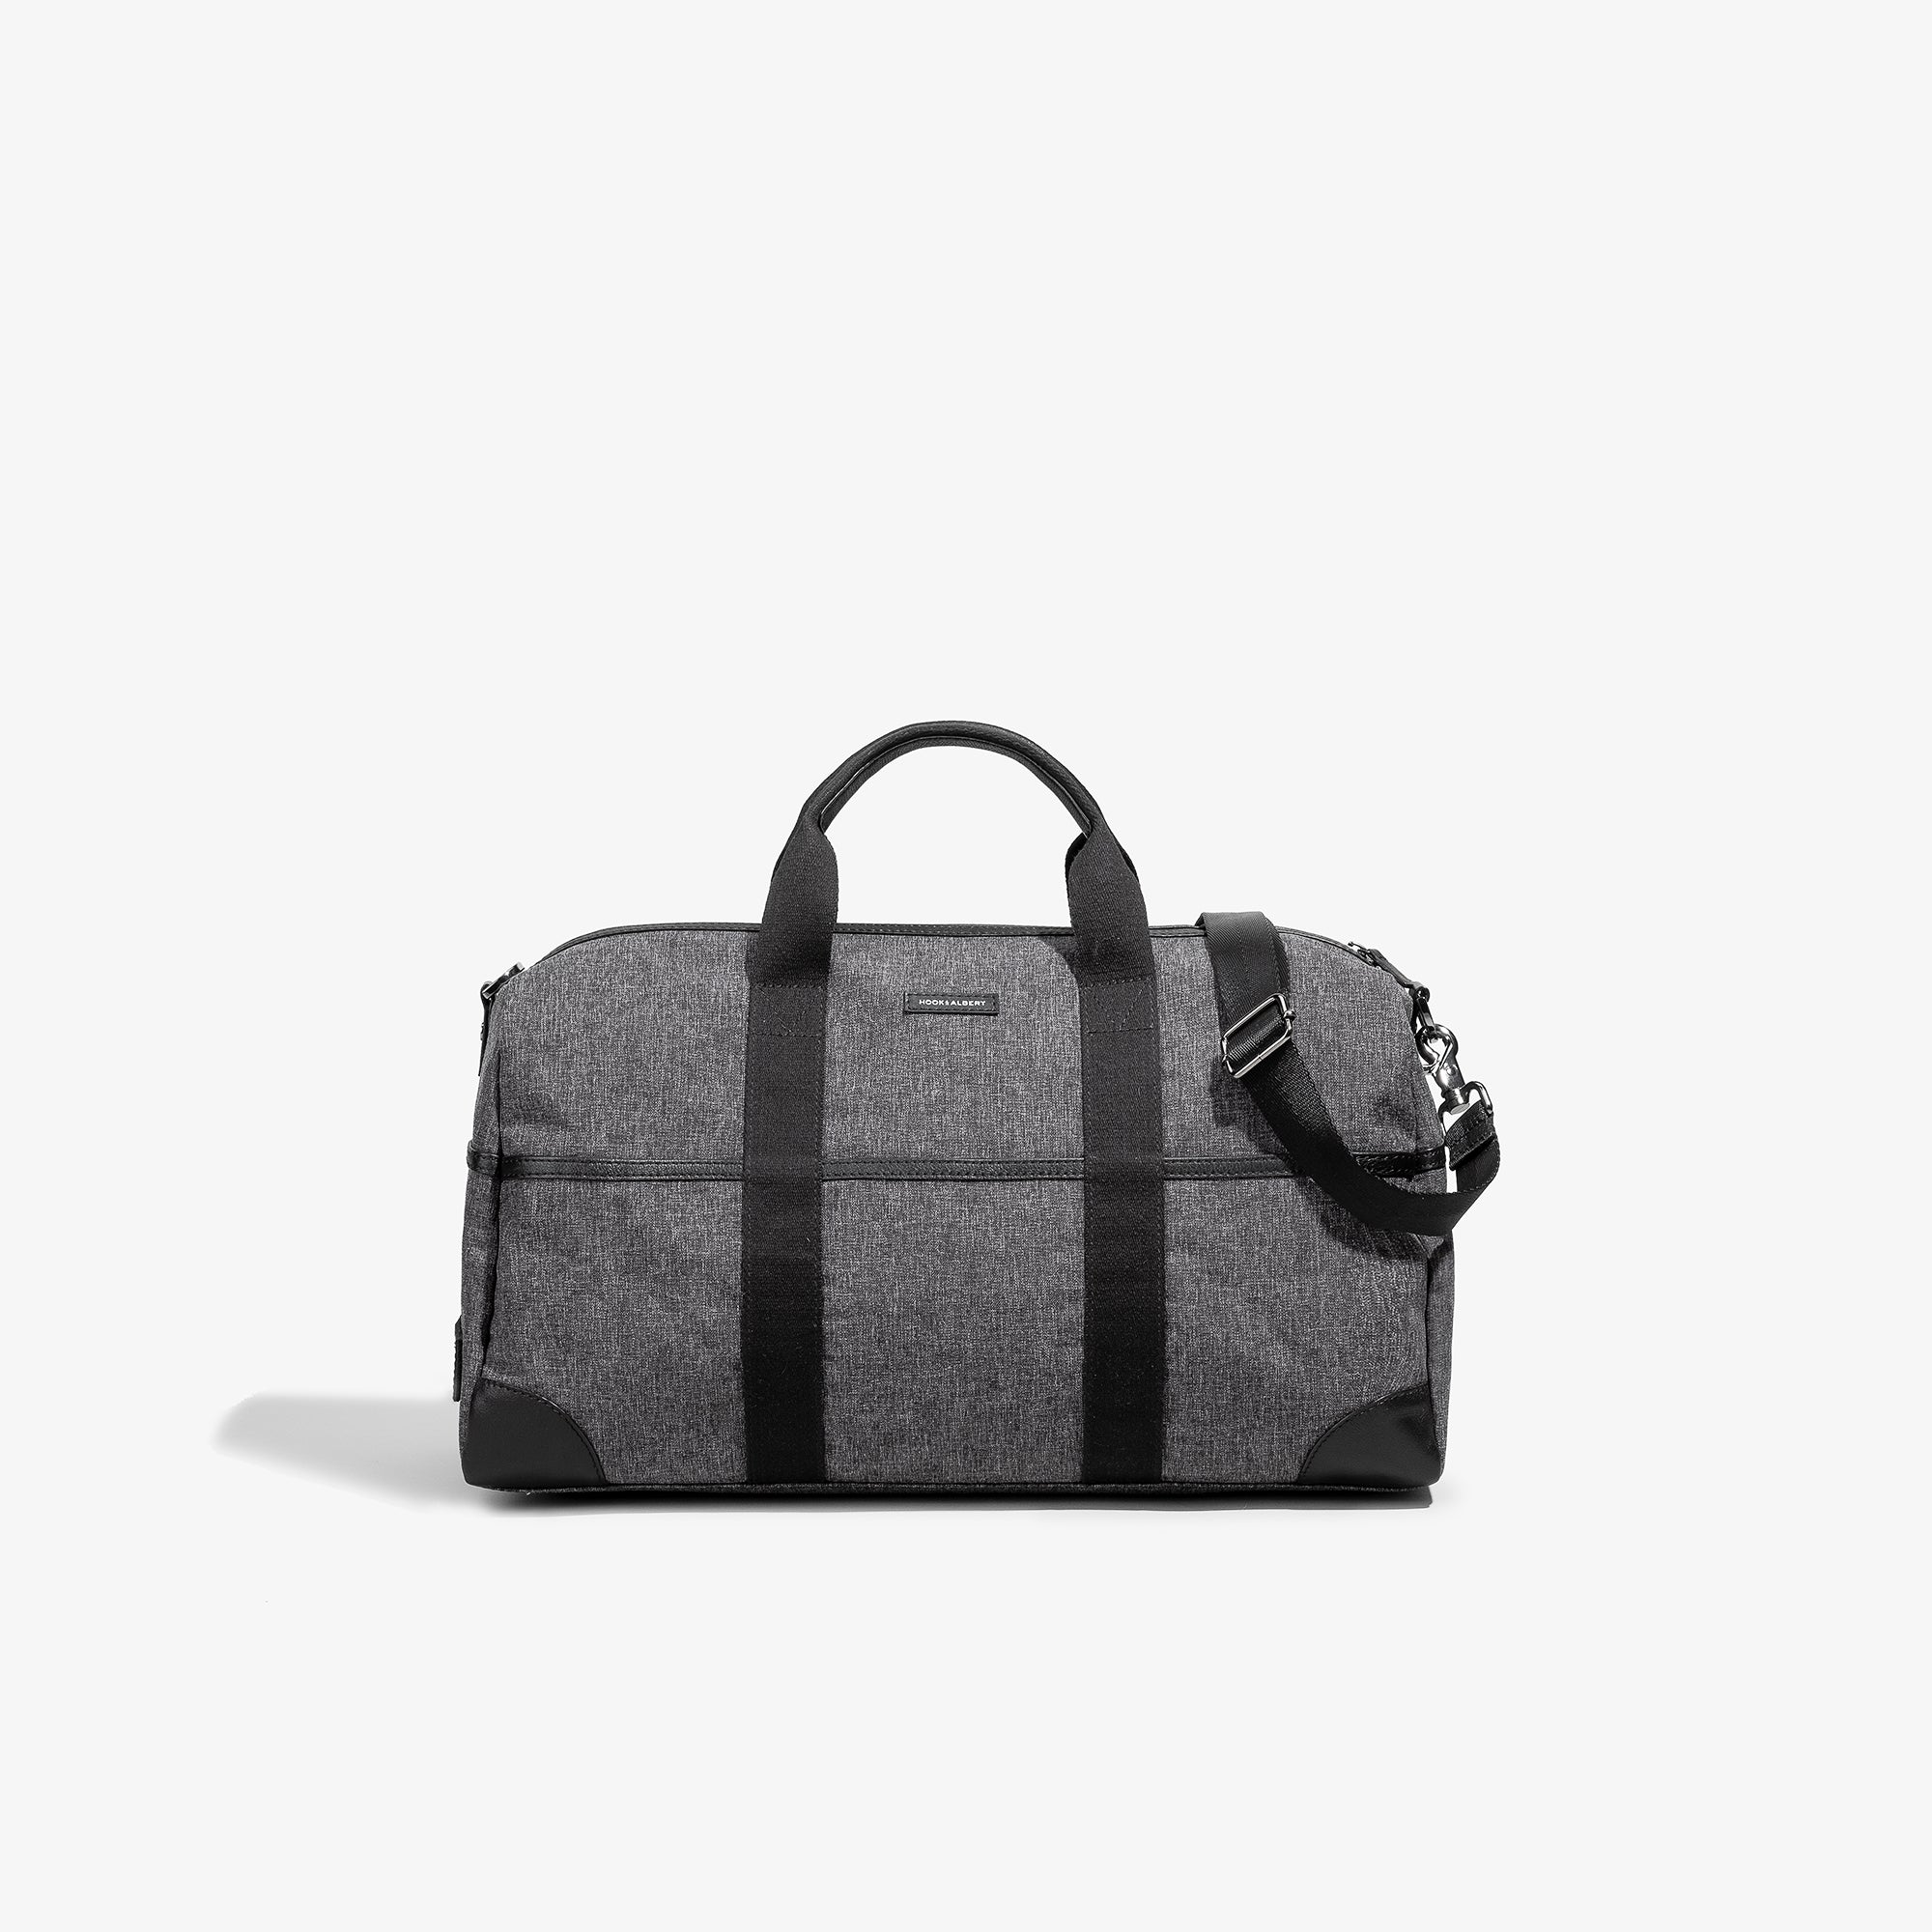 The Gray Training Duffel travel product recommended by Nicolette Stern on Lifney.